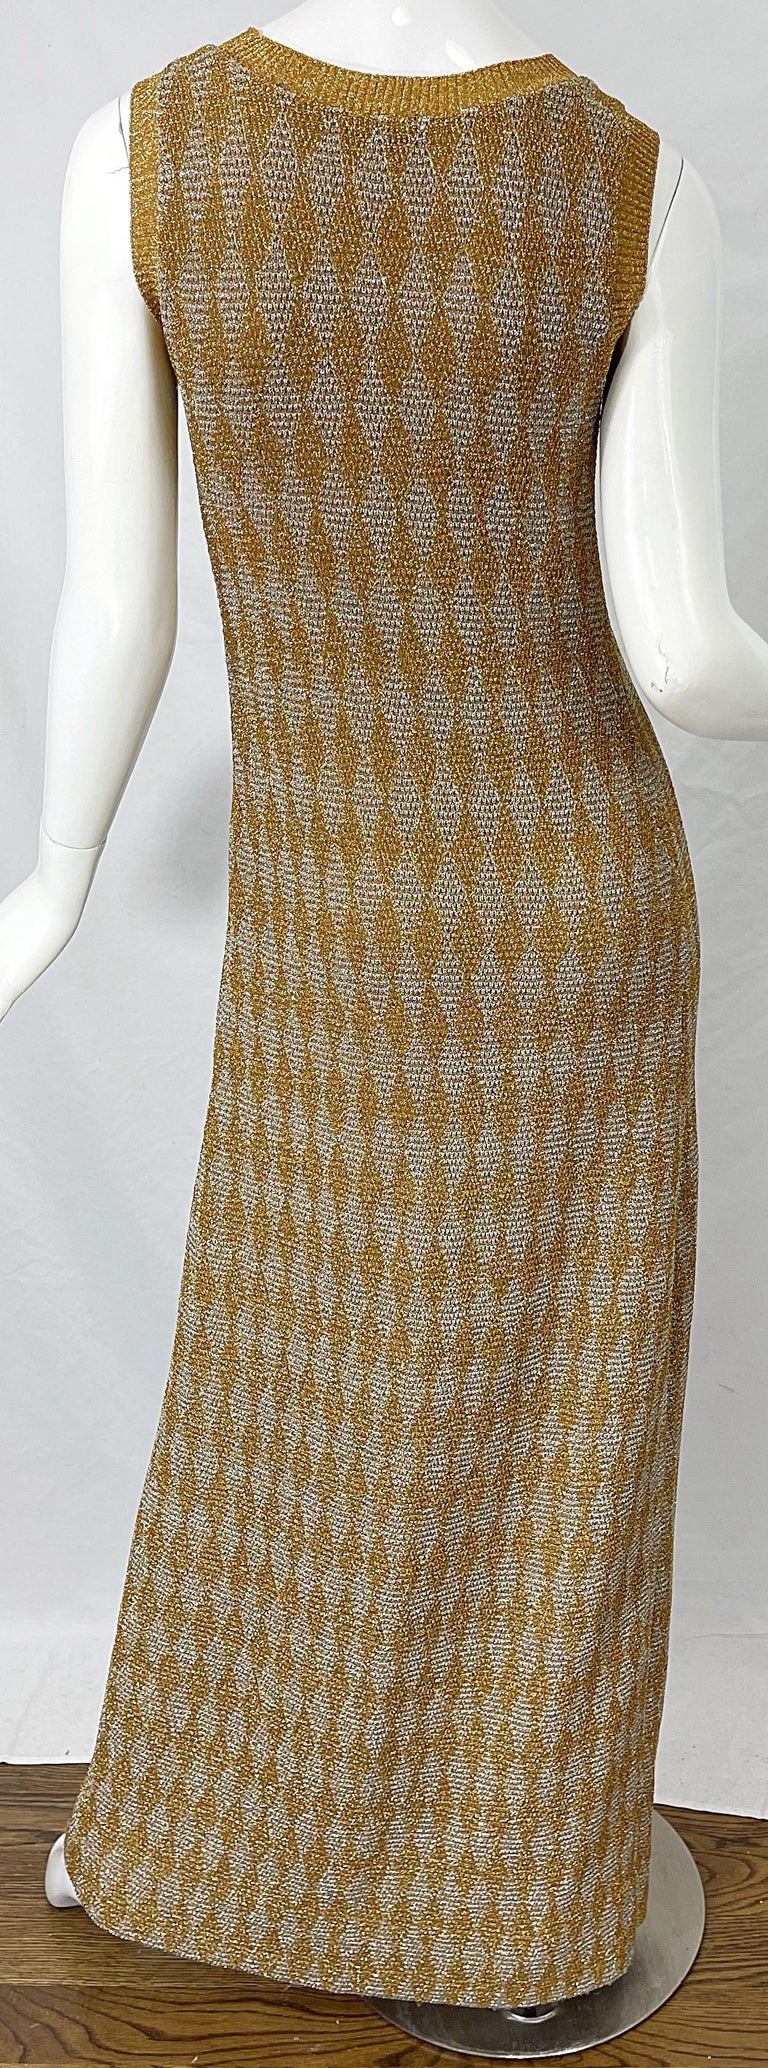 1970s Halston NWT Gold + Silver 70s Vintage Lurex Gown + Duster Cardigan For Sale 10